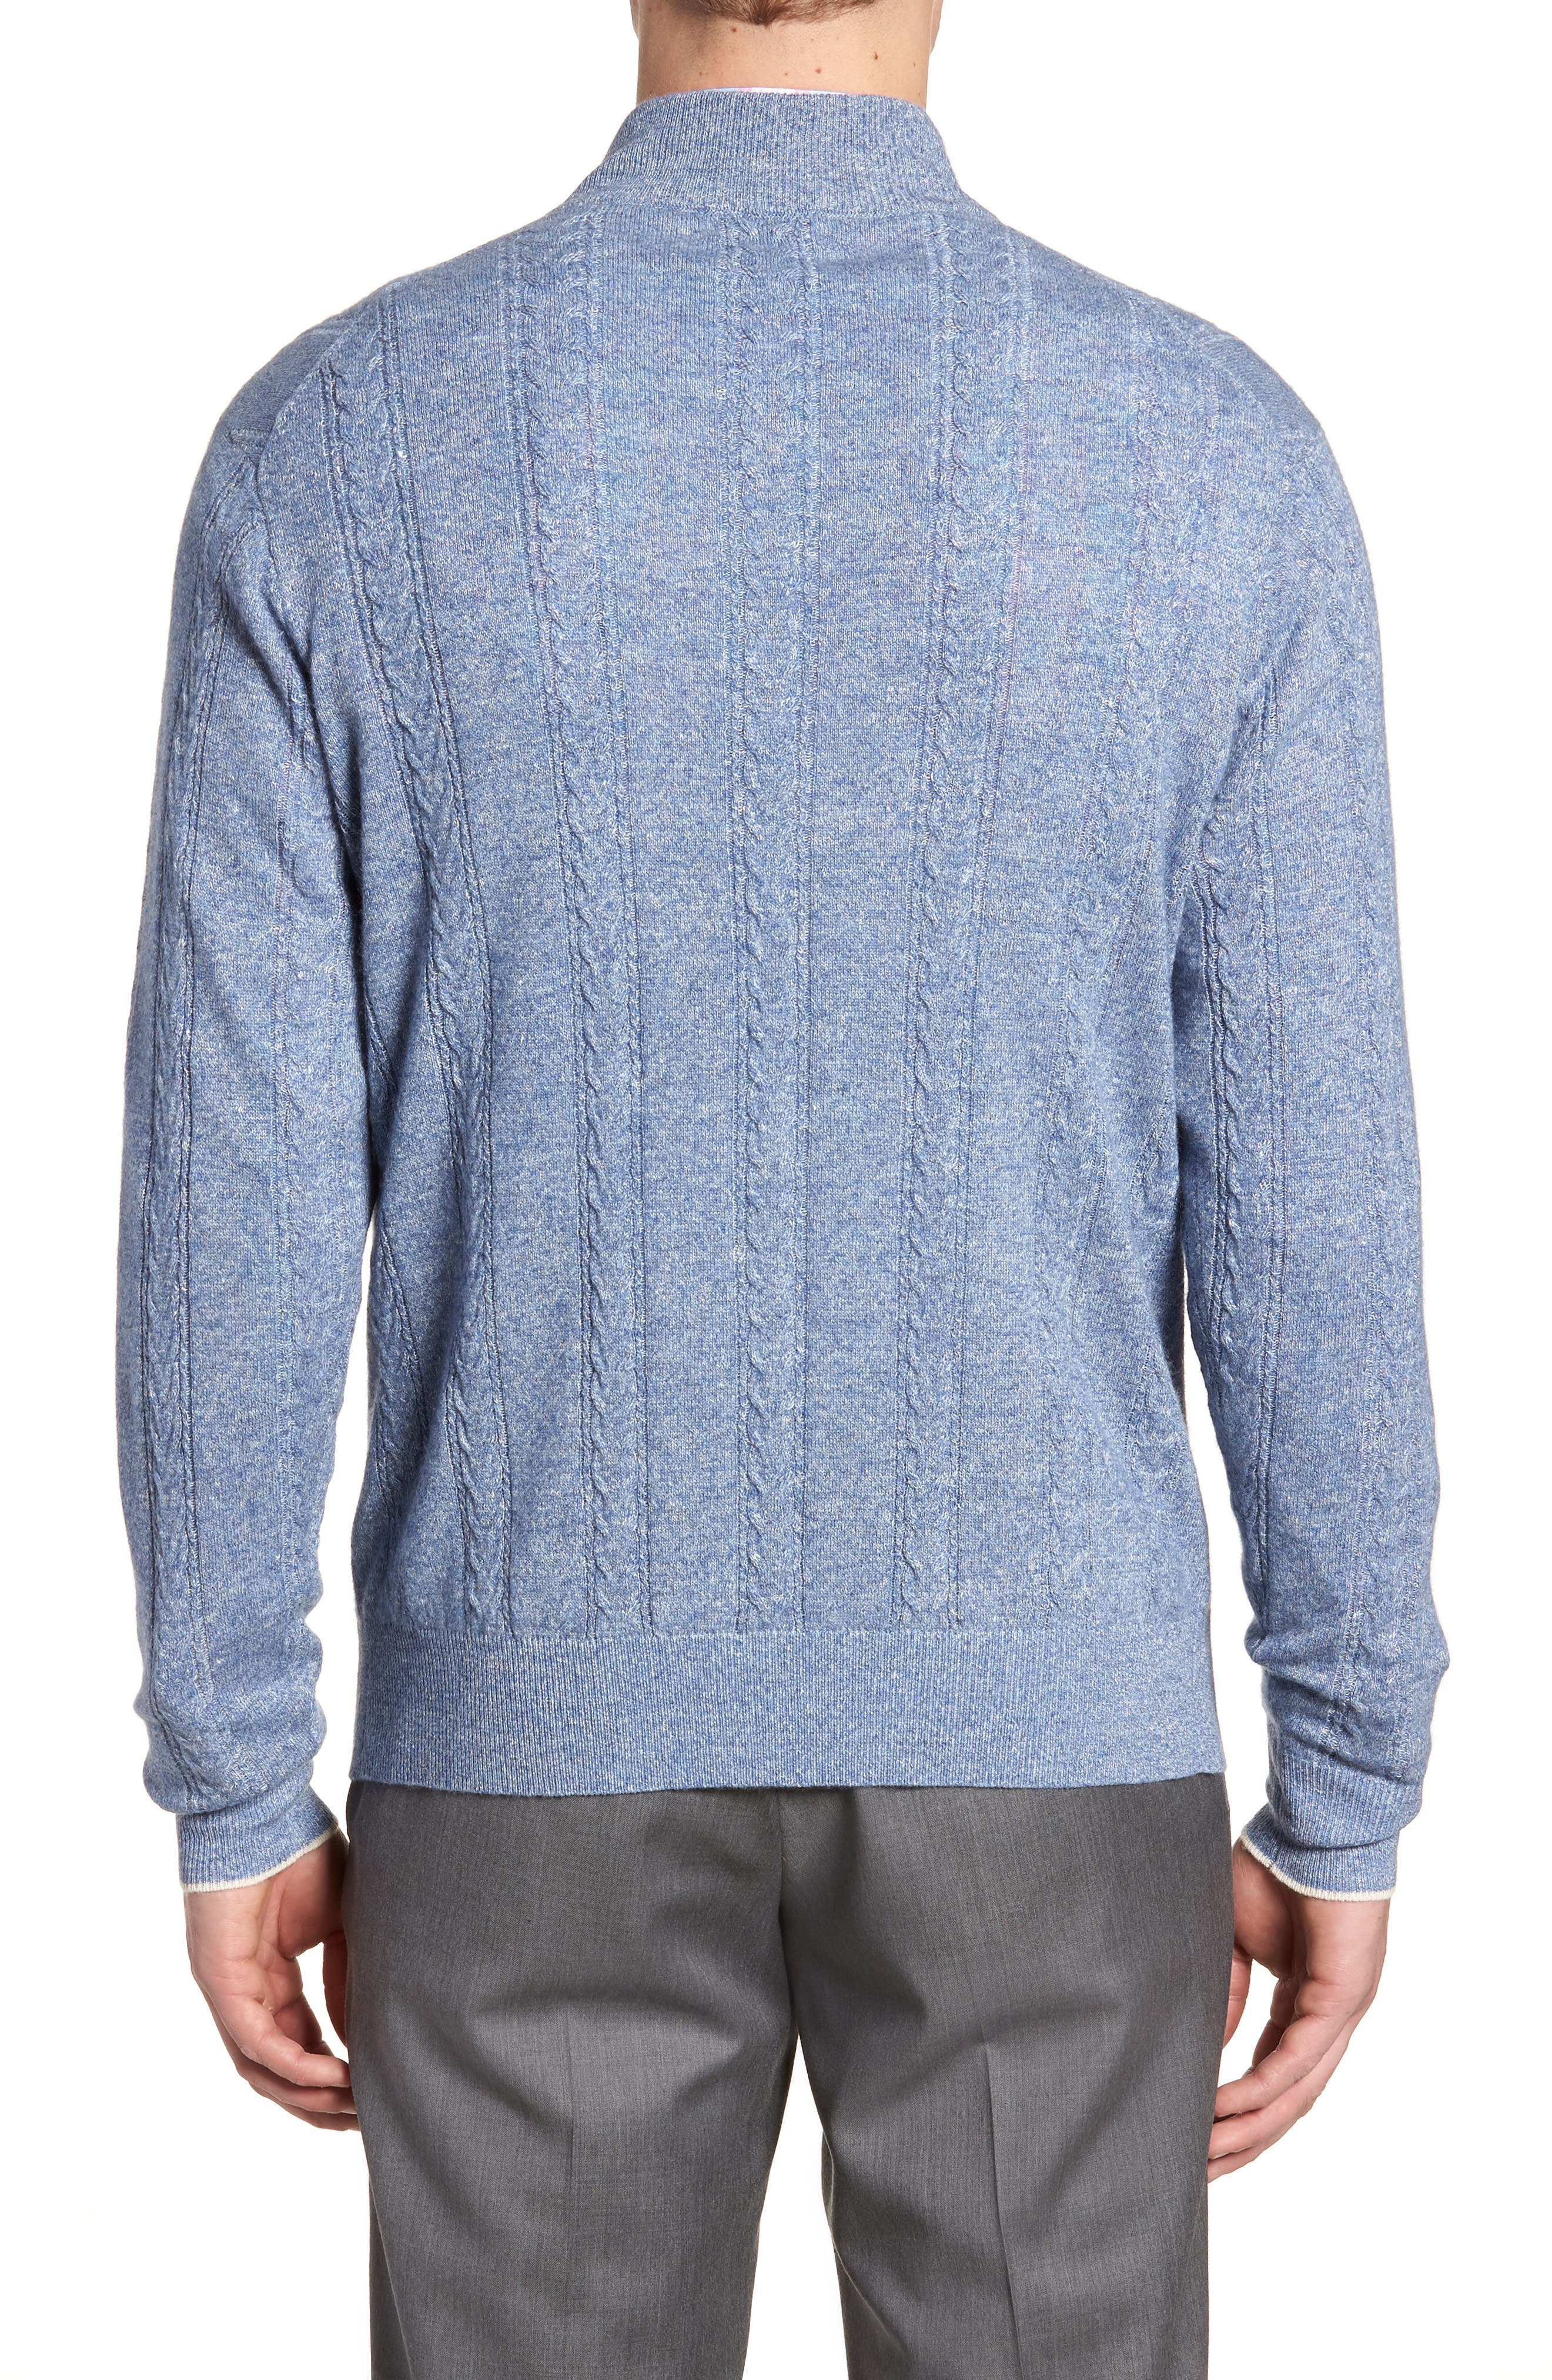 Crown Fleece Cashmere & Linen Quarter Zip Sweater,                             Alternate thumbnail 2, color,                             Atlas Blue